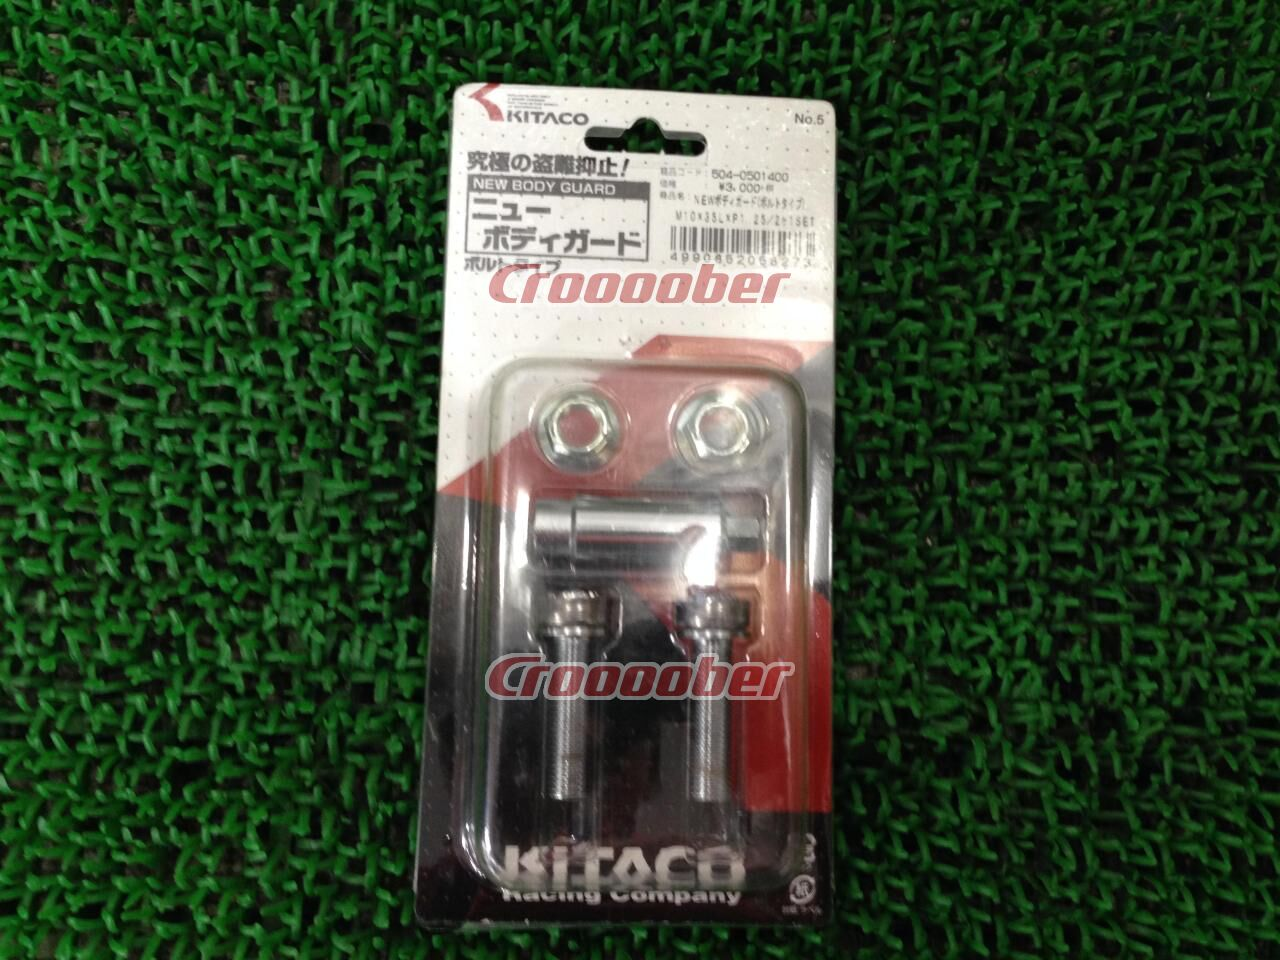 the price cut kitaco new body guard bolt type 504 0501400